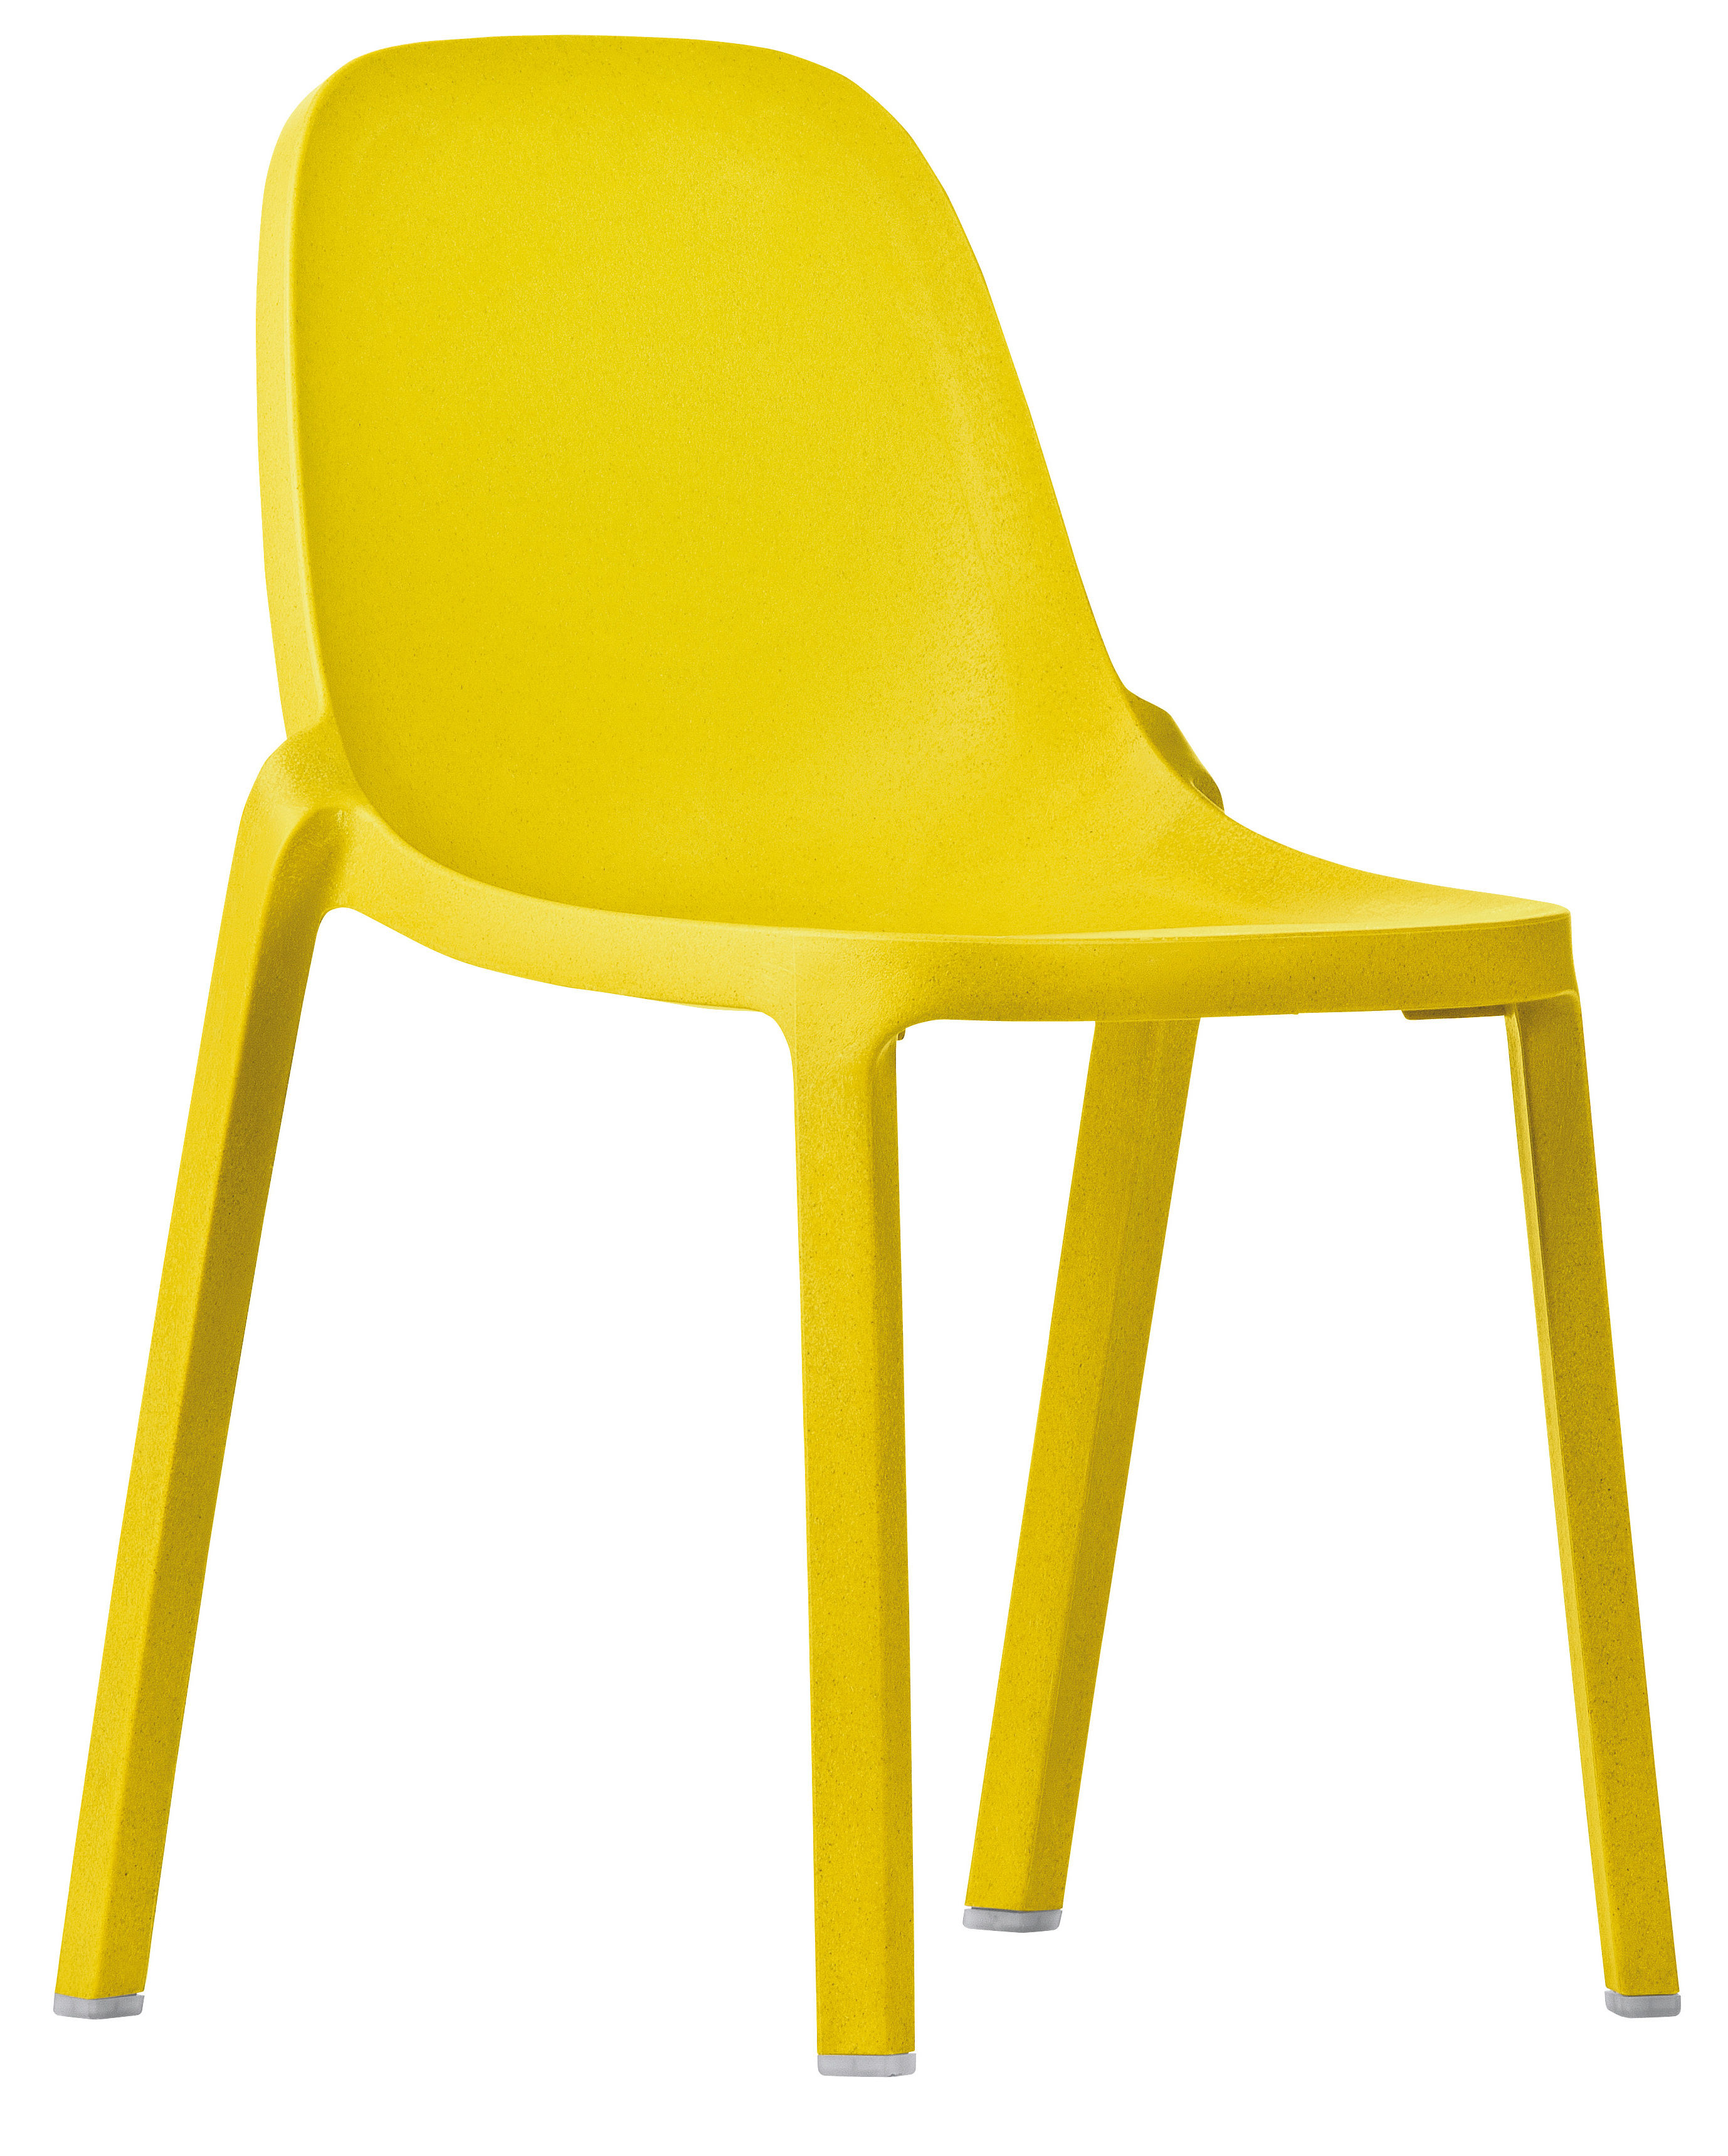 Furniture - Chairs - Broom Stackable chair - Recycled plastic by Emeco - Yellow - Fibreglass, Polypropylene, Wood